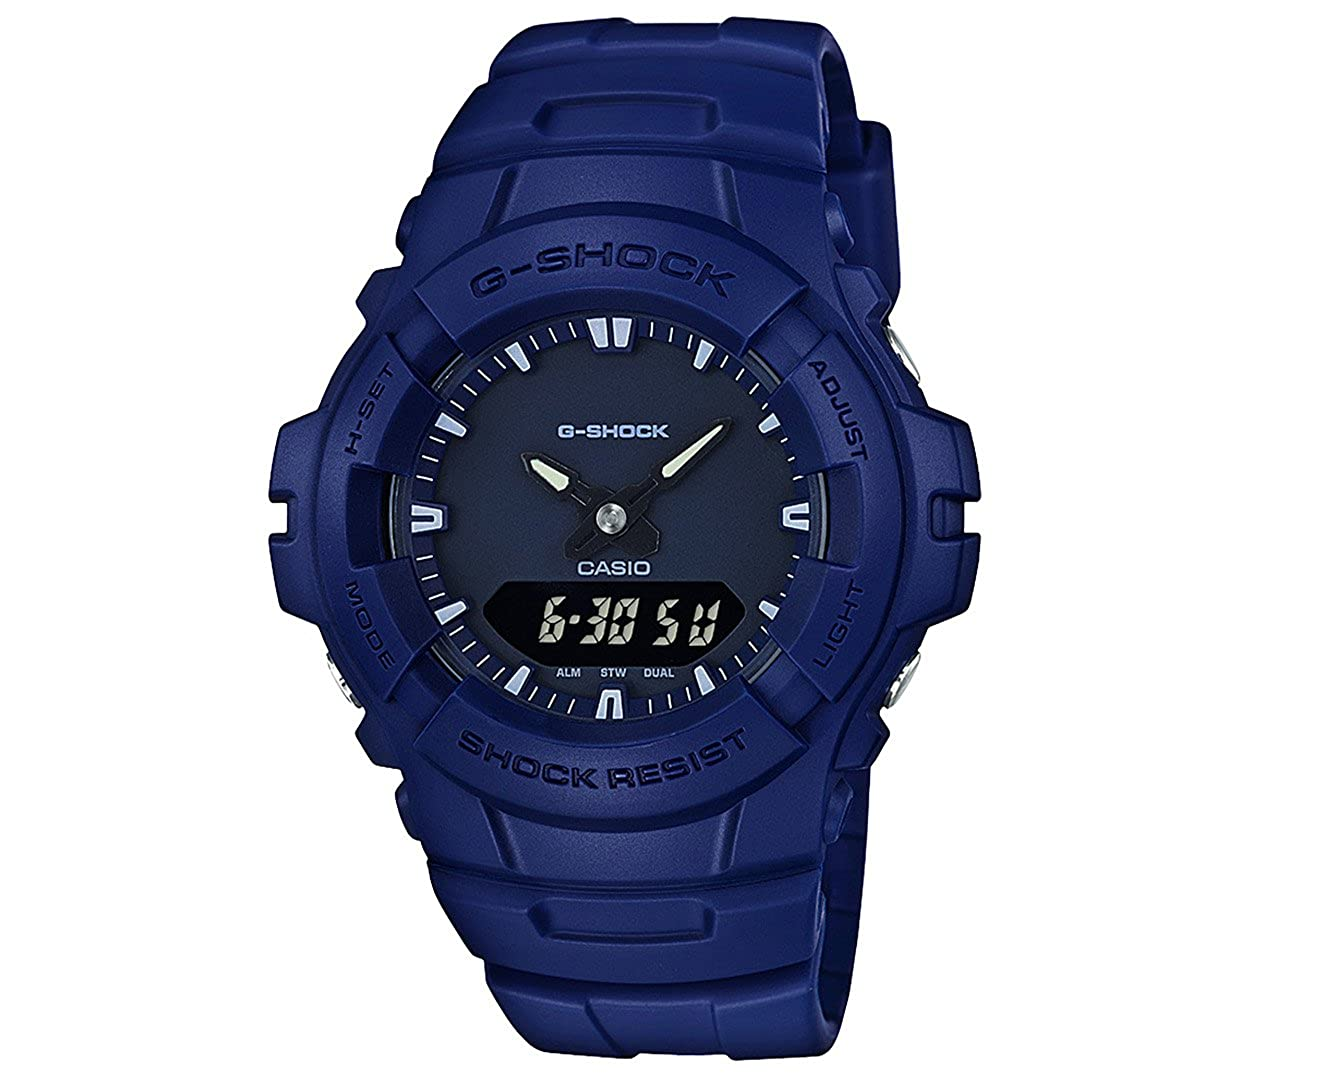 Amazon.com: Casio G-shock Analog Digital Blue Mens Watch With Date and 200 Meter Water Resistant G100CU-2A: Watches